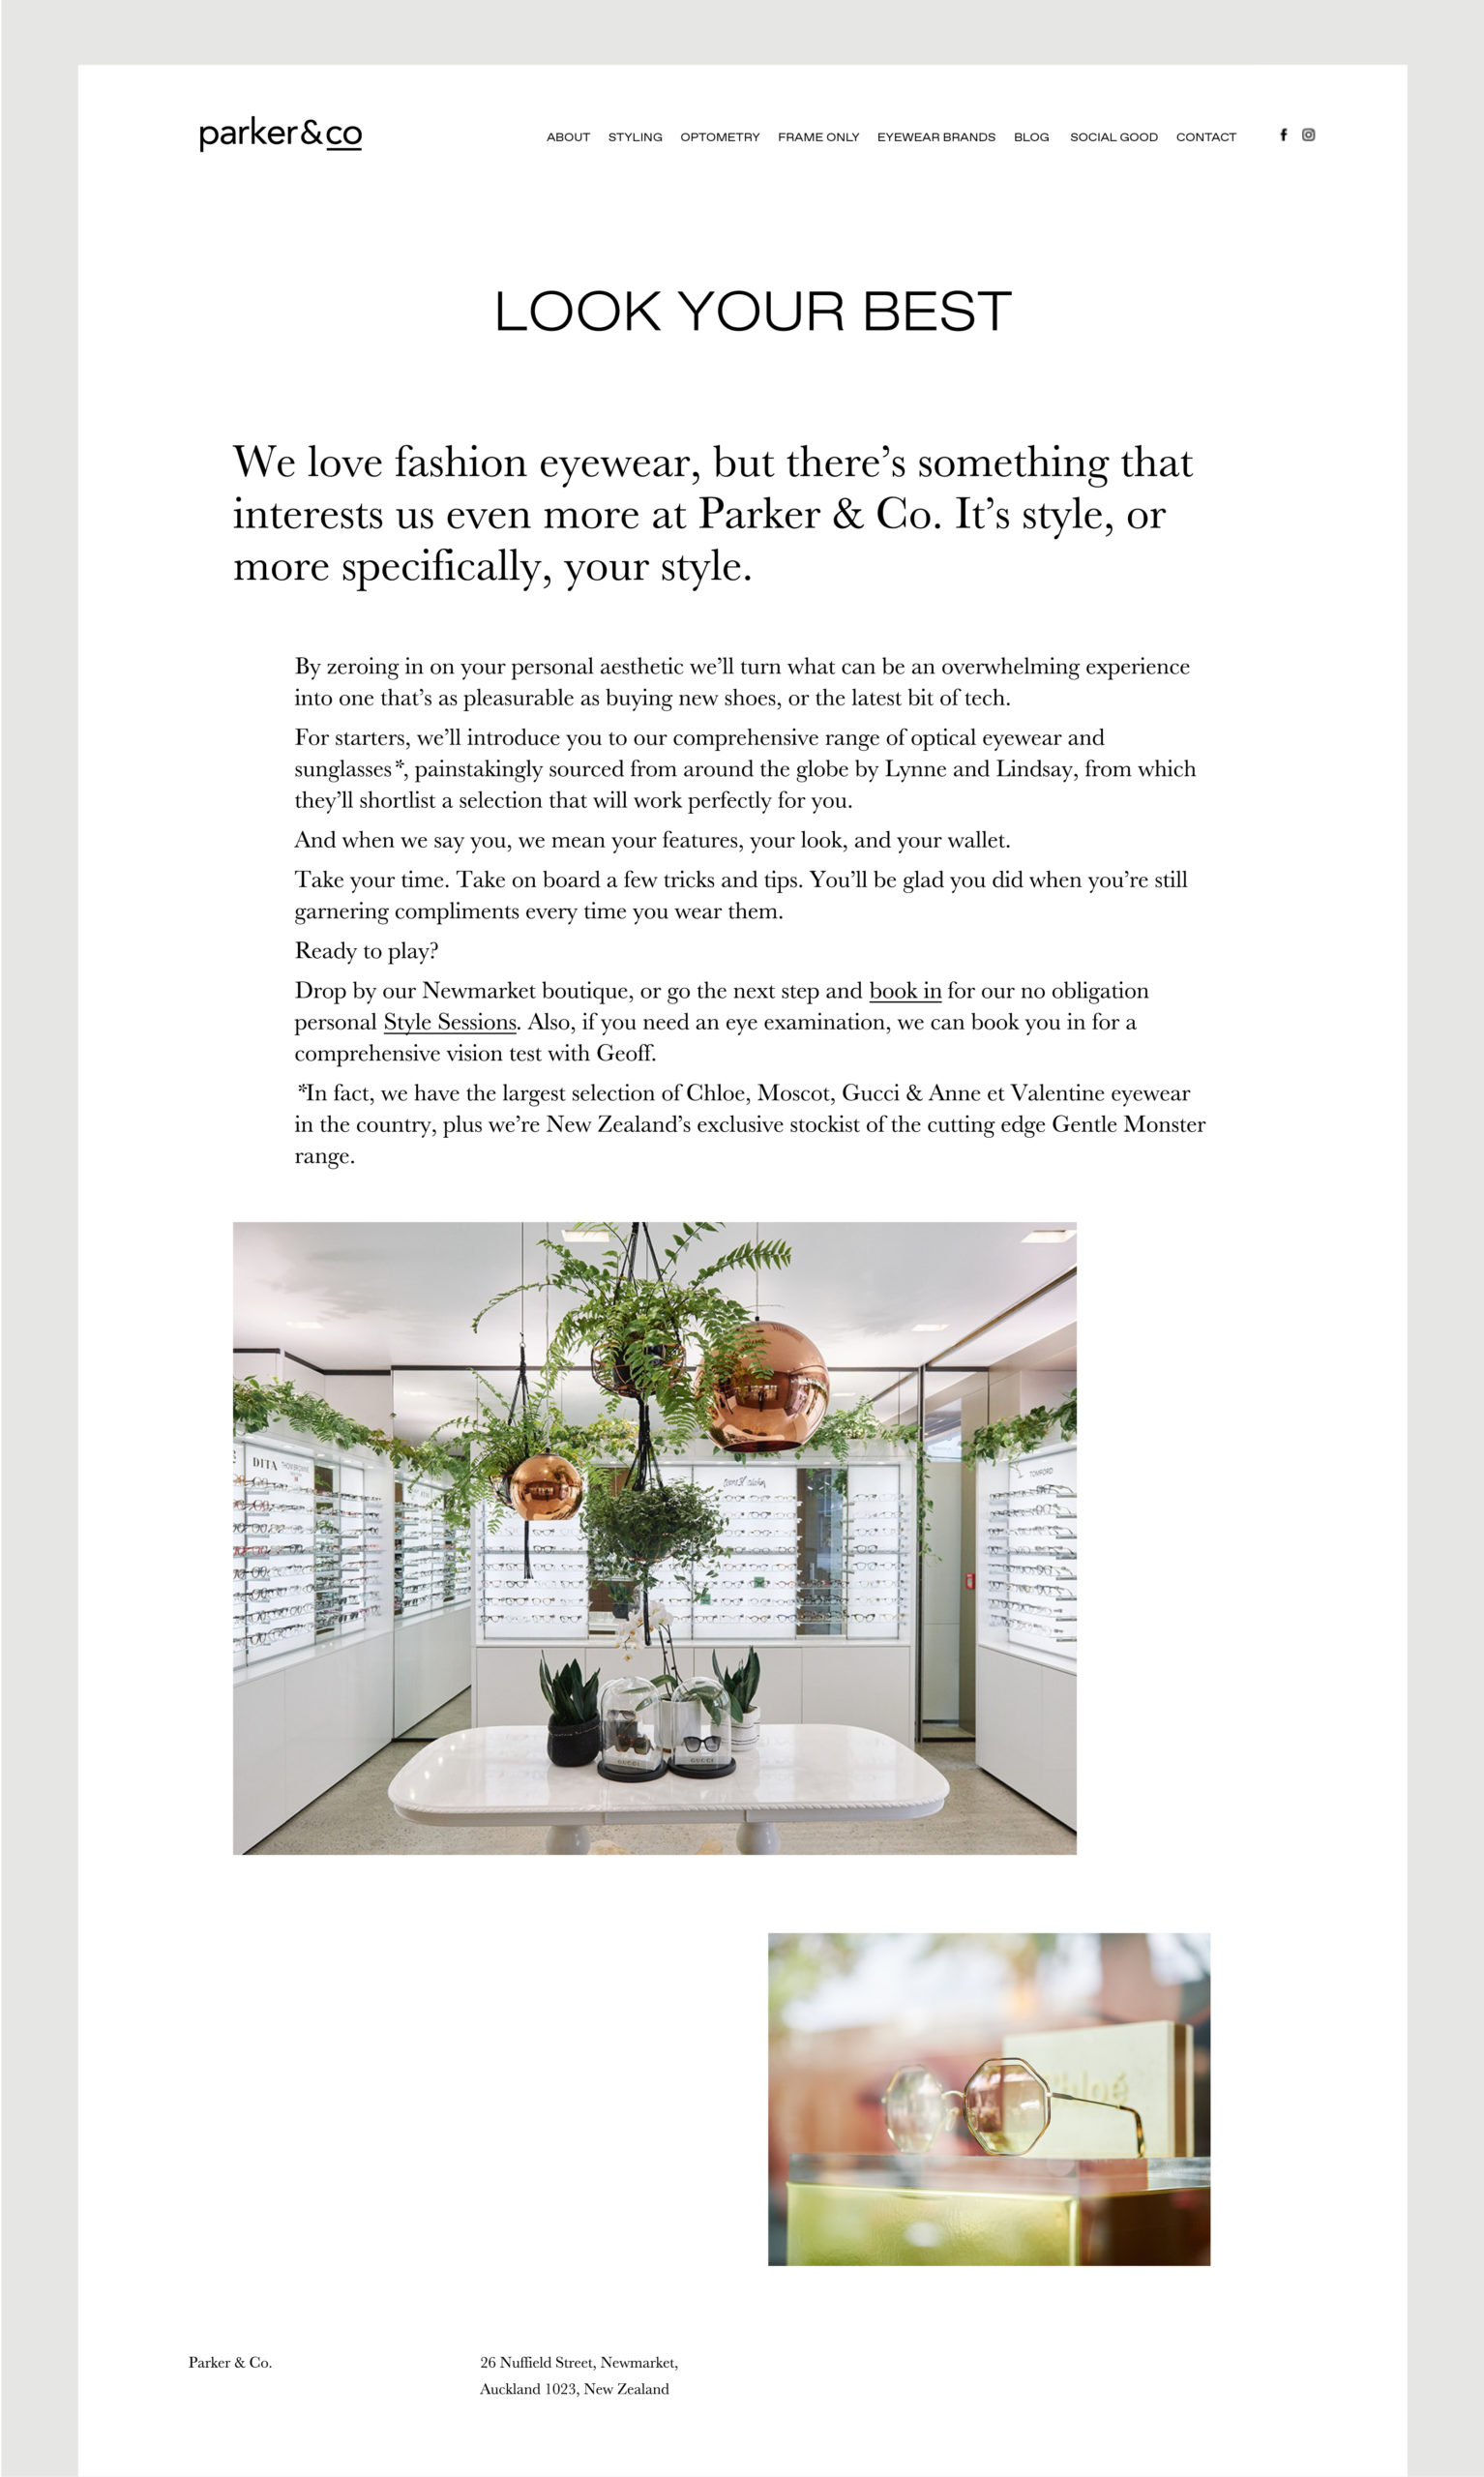 Parker and Co website – About page – Copy introduces the business and shows image of store interior